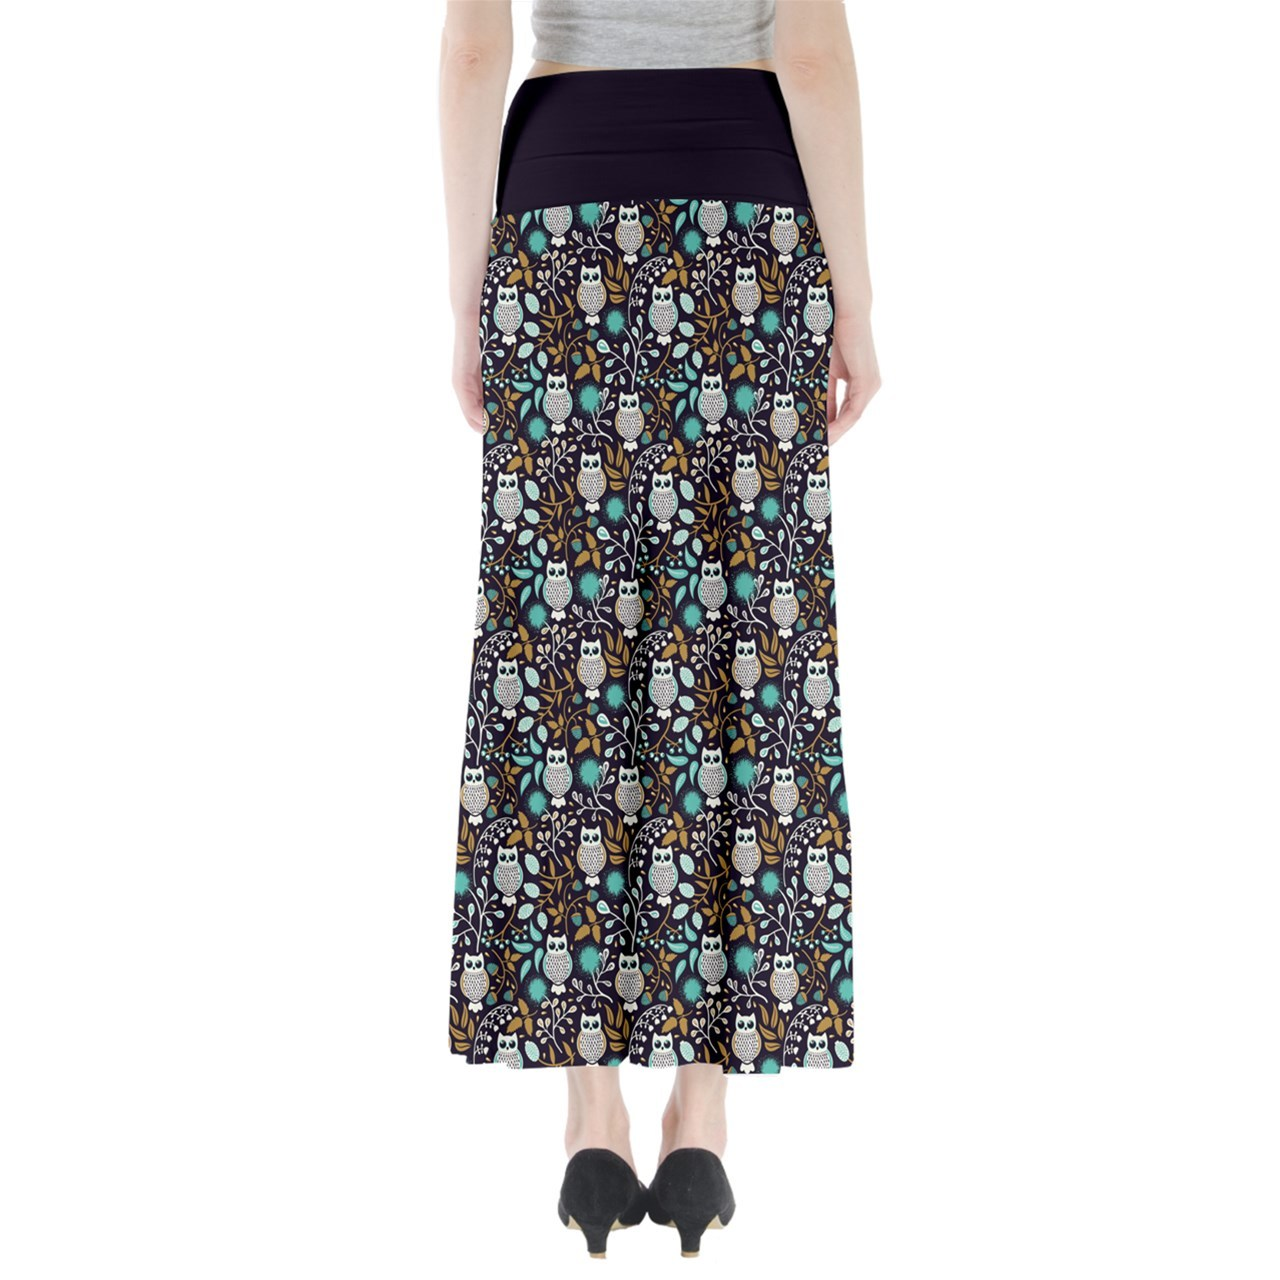 Women's Owl Bird Printed Summer Casual Stretchy Fit Long Maxi Skirt Size XS-3XL